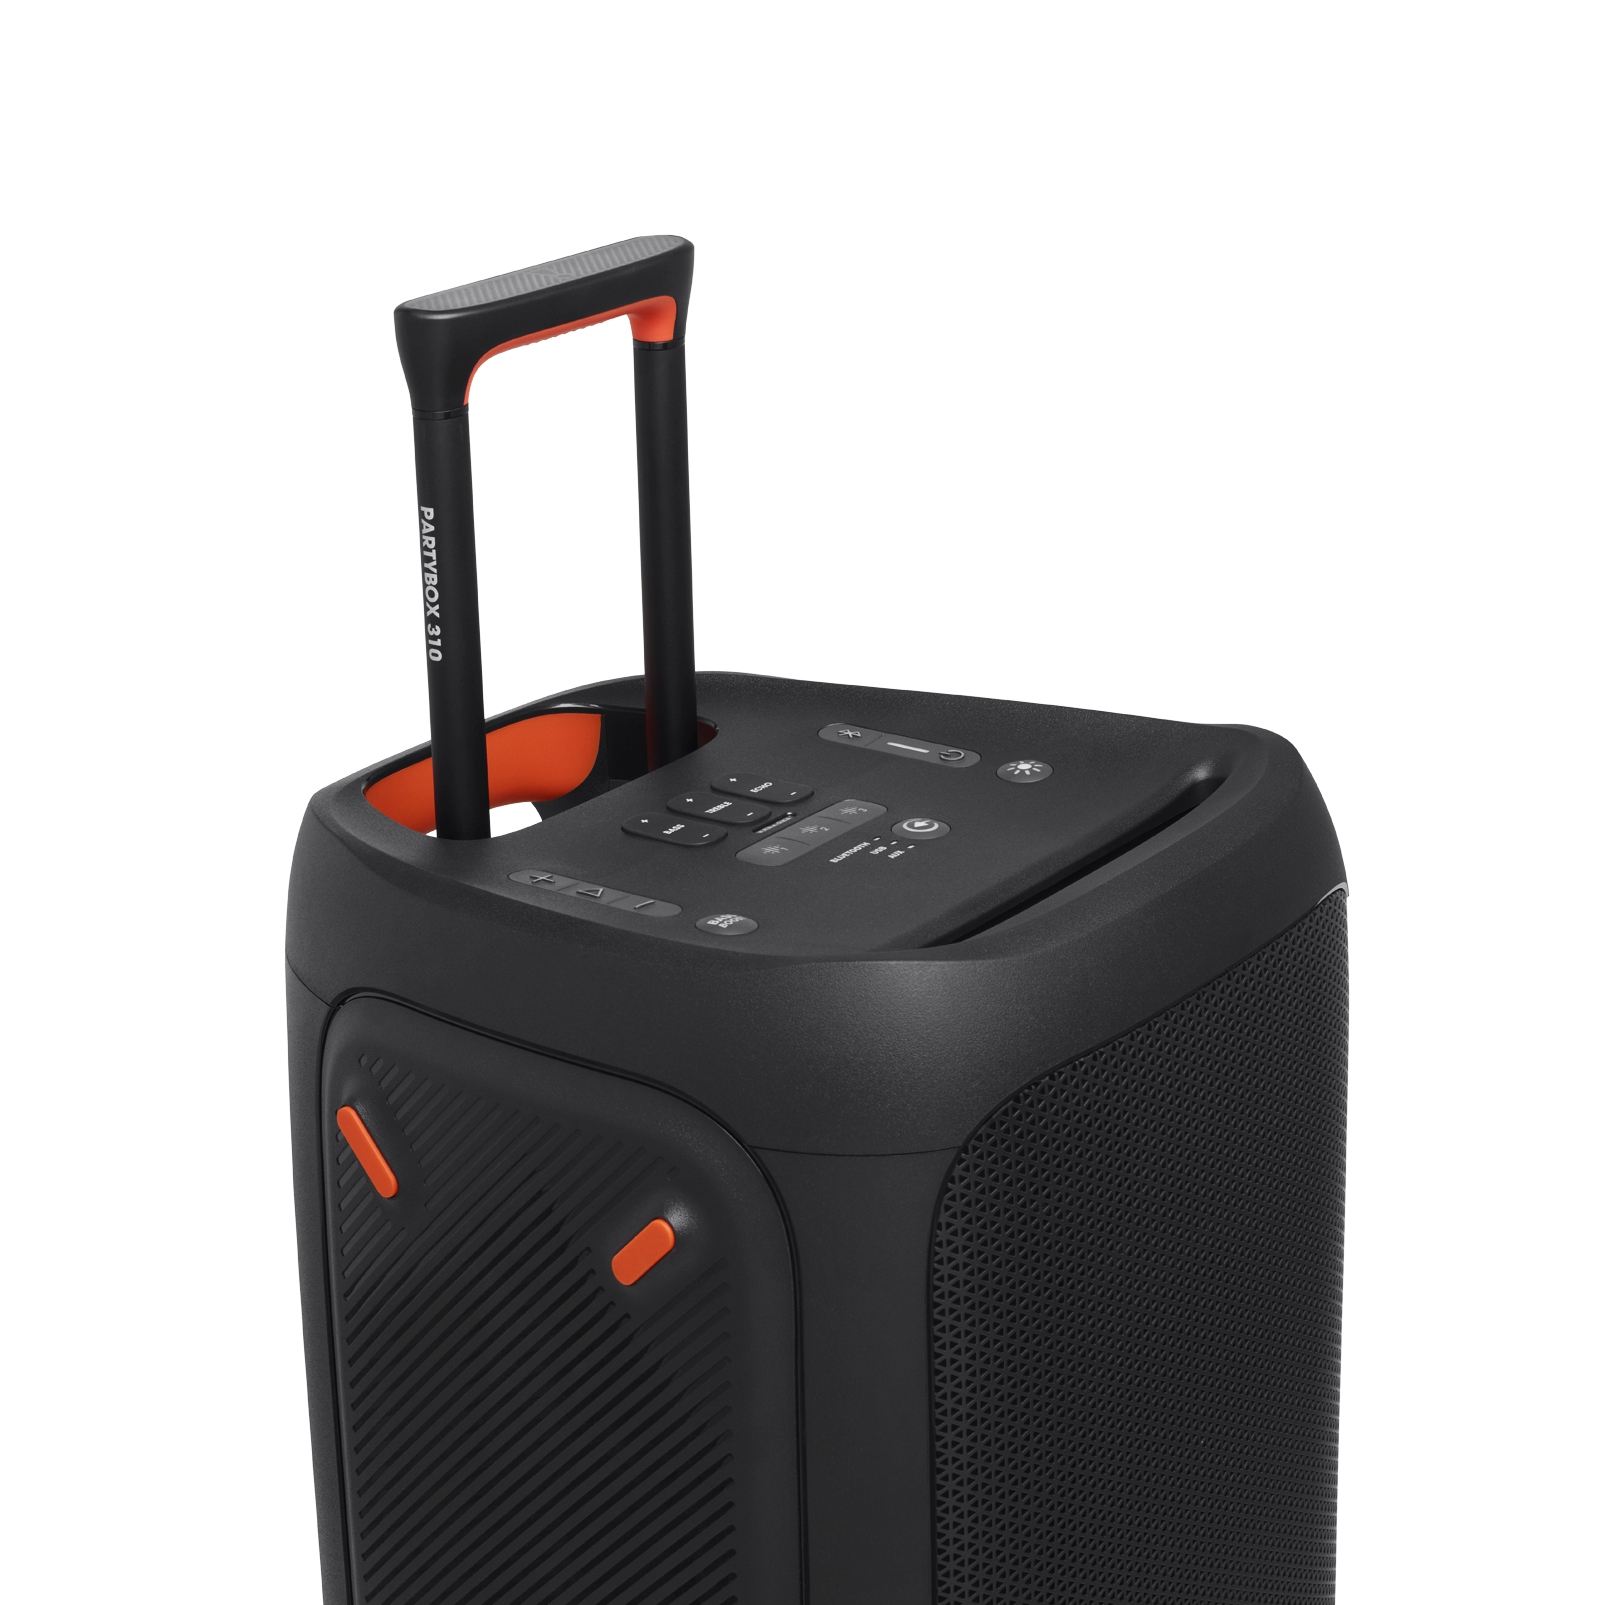 JBL Partybox 310 + Mic - Black - Portable party speaker with 240W powerful sound, built-in lightshow and wired mic - Detailshot 4